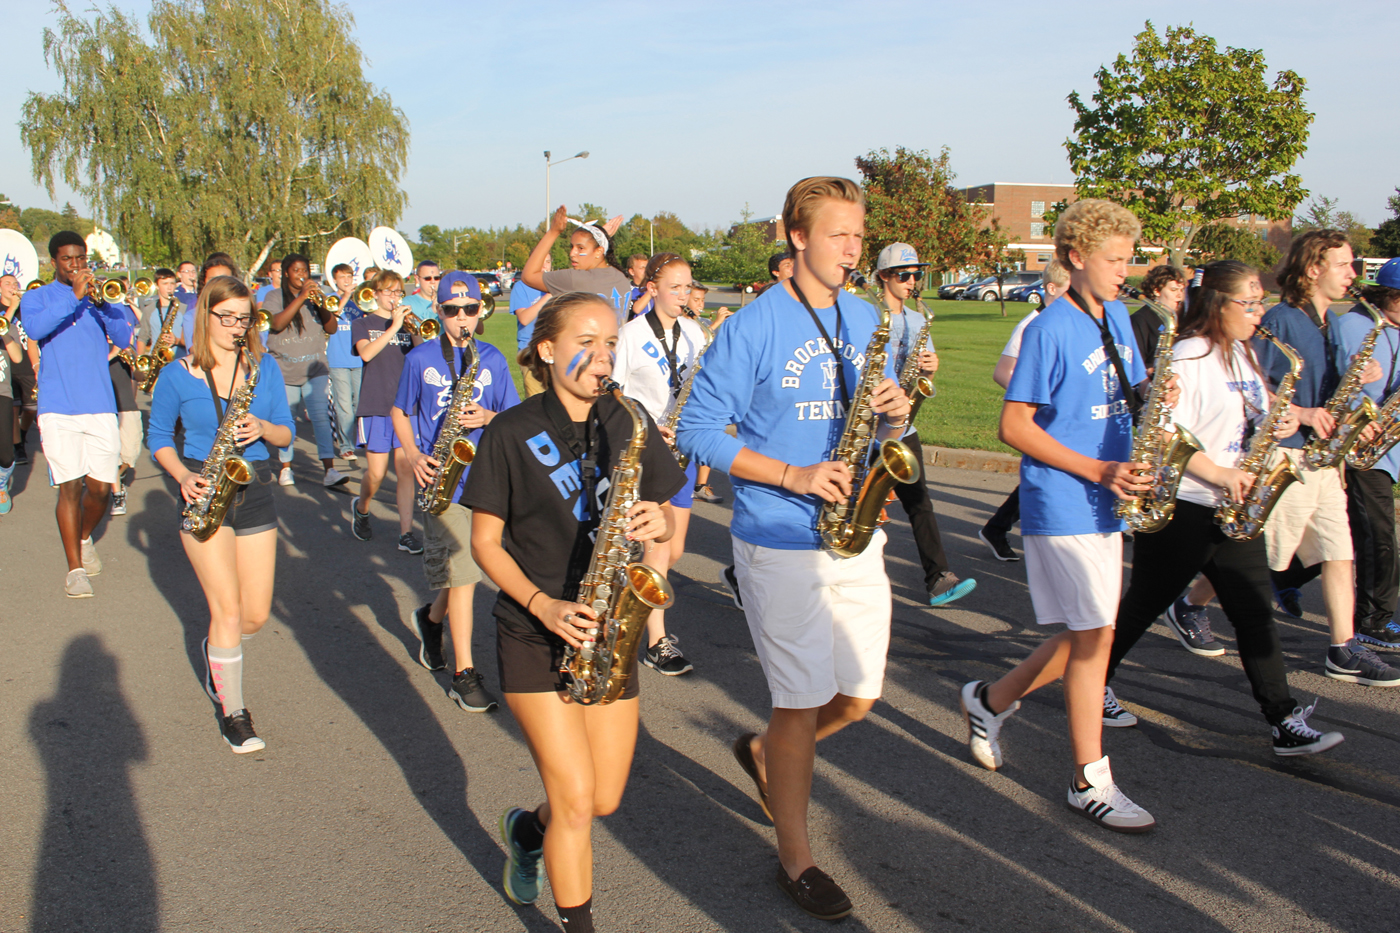 The Brockport High School Band marching in last year's homecoming parade. Provided photo